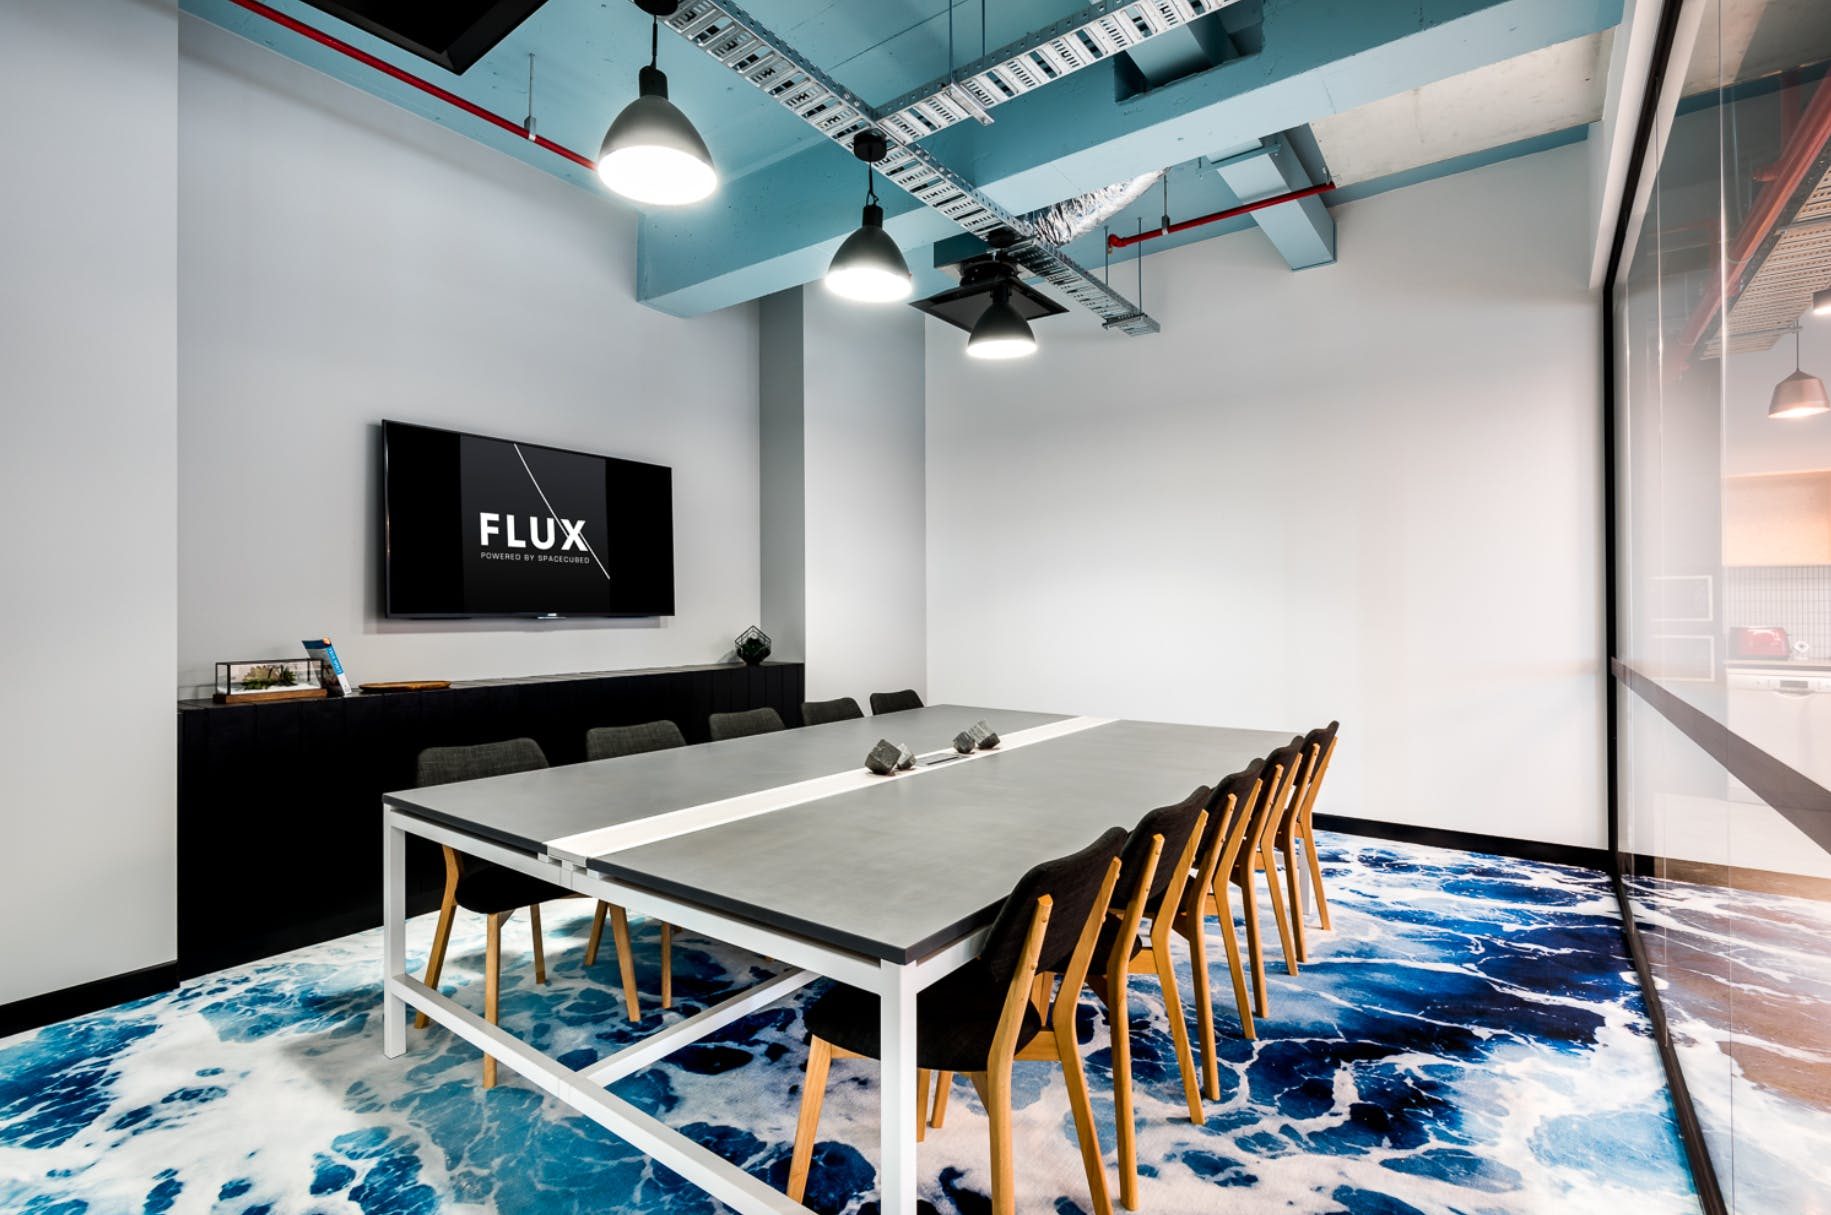 Watsons, Evans, meeting room at FLUX, image 1